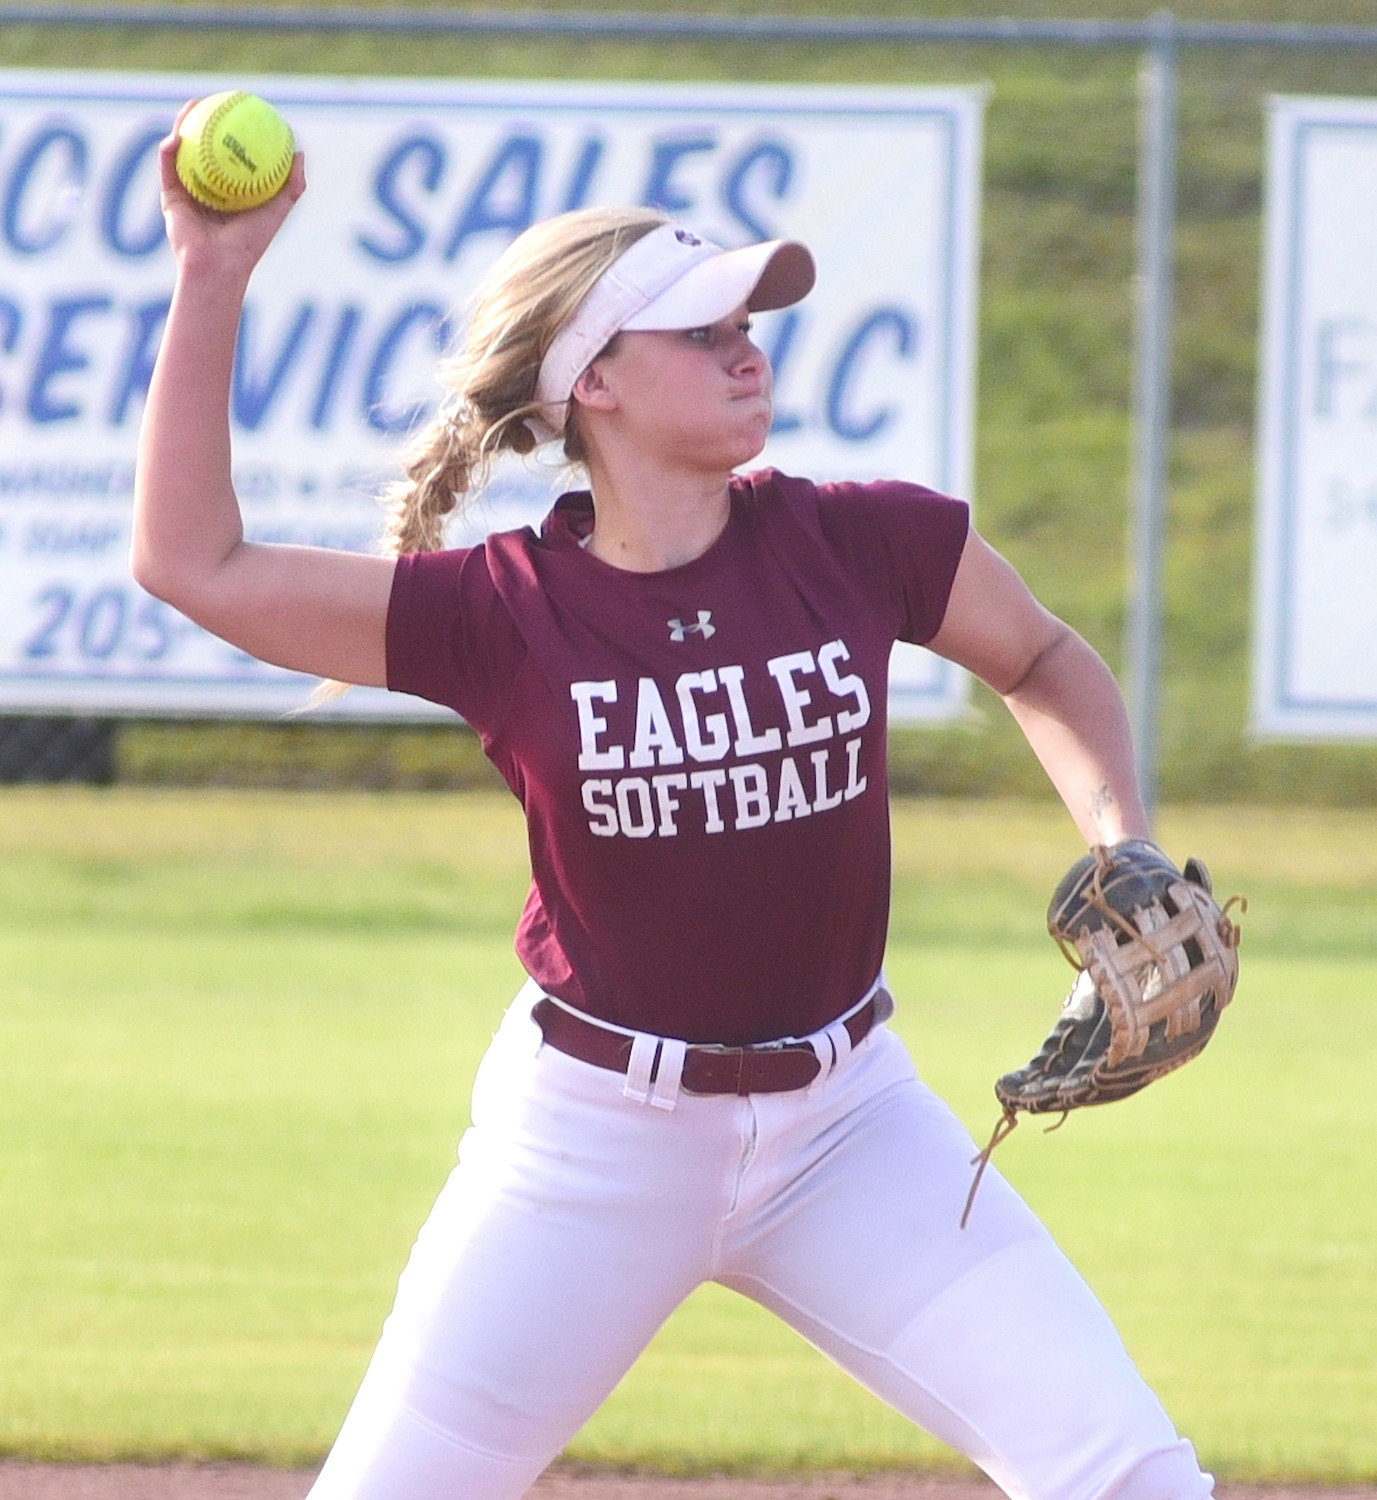 Sumiton Christian shortstop Jessie Baughan throws to first base for an out during a game against Oakman this season. The Eagles have to win three straight games in Tuscaloosa on Monday to earn a spot in the state tournament.